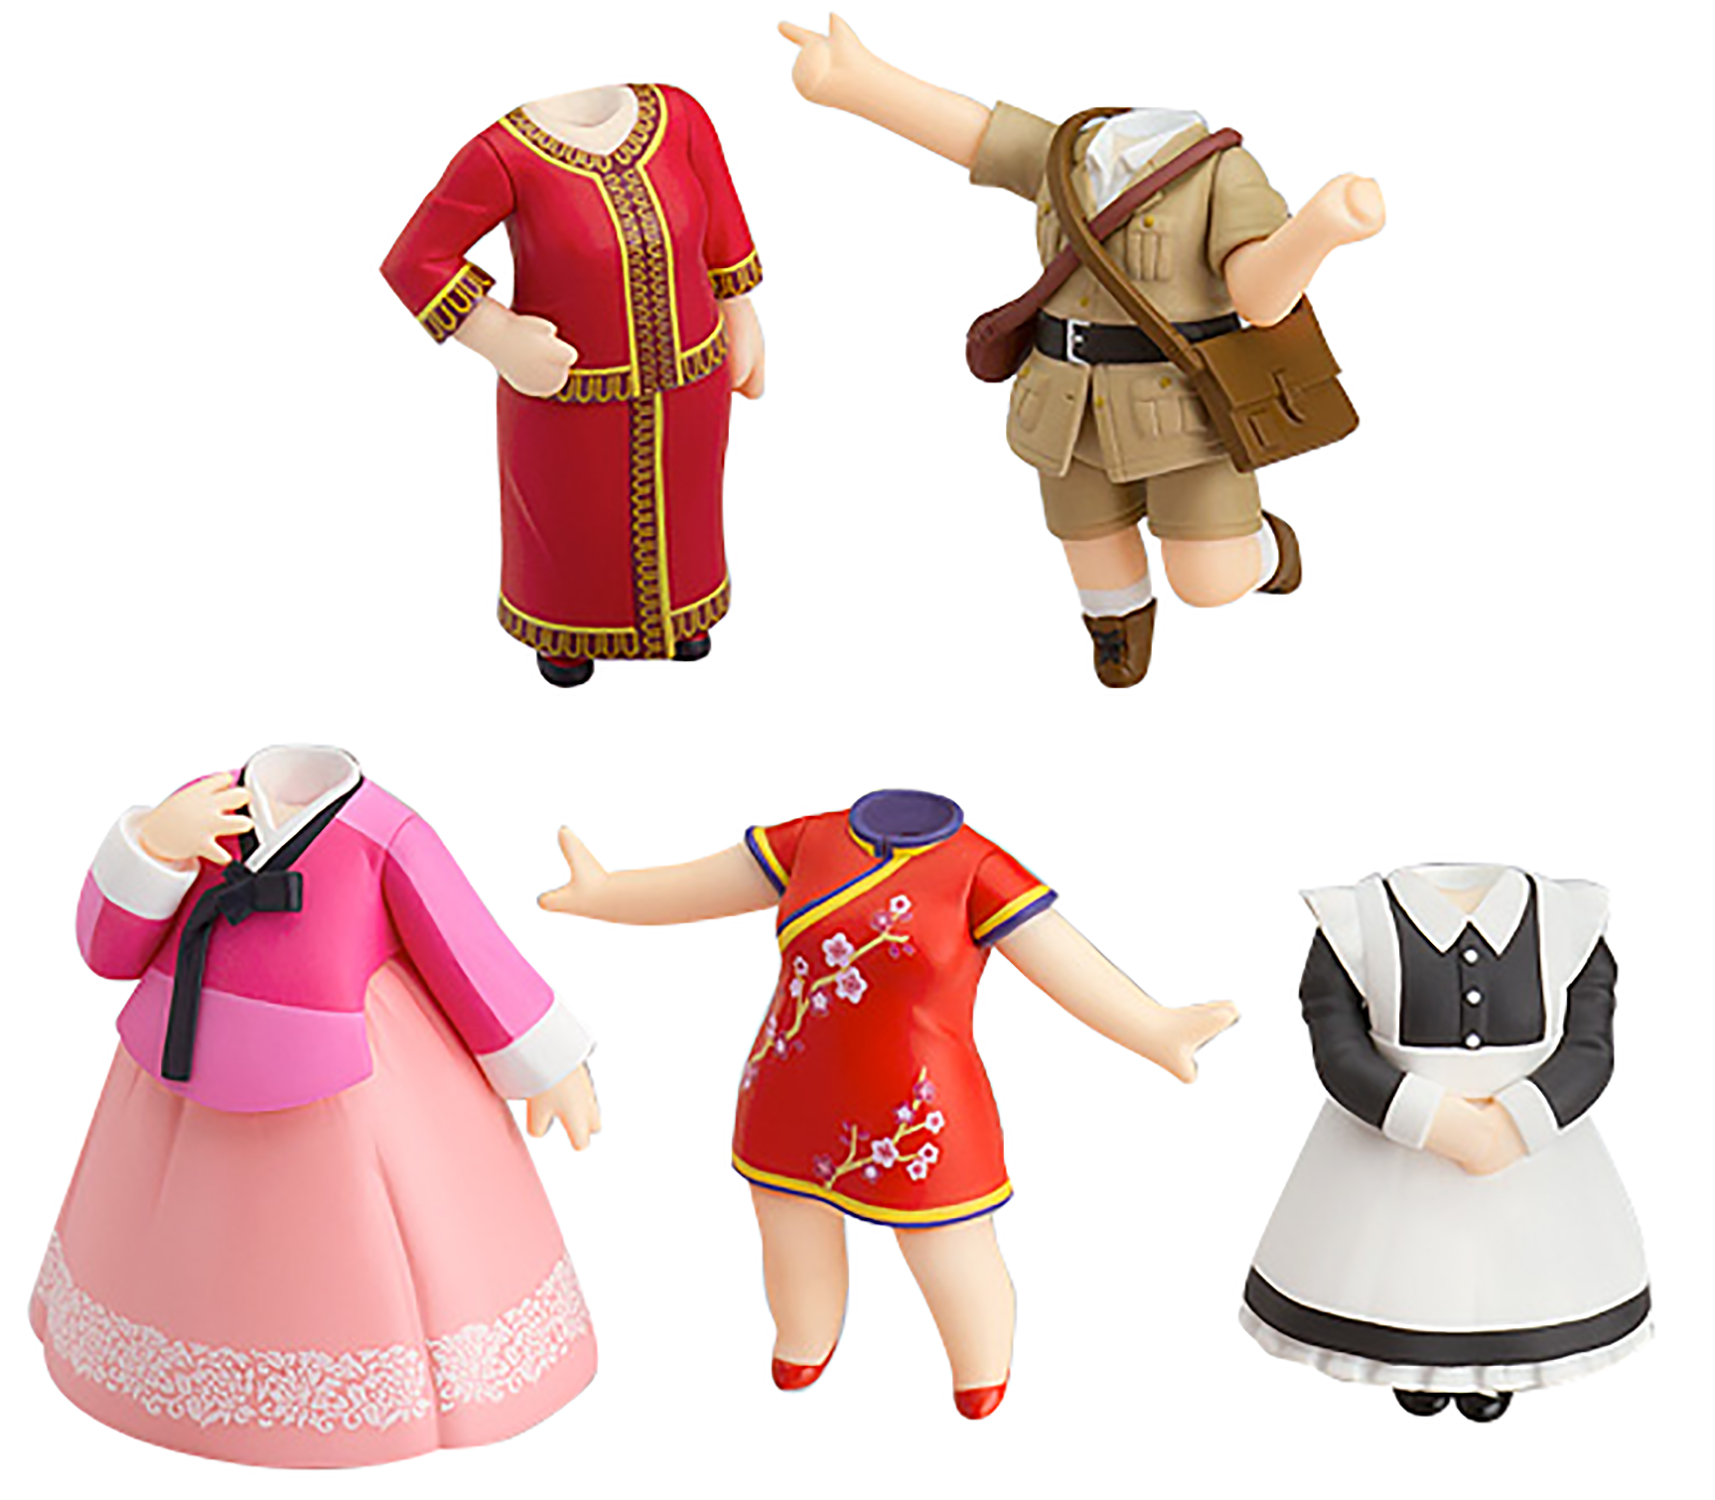 LOVE LIVE DRESS UP WORLD GIRLS VOL 1 NENDOROID MORE 5PC DS (